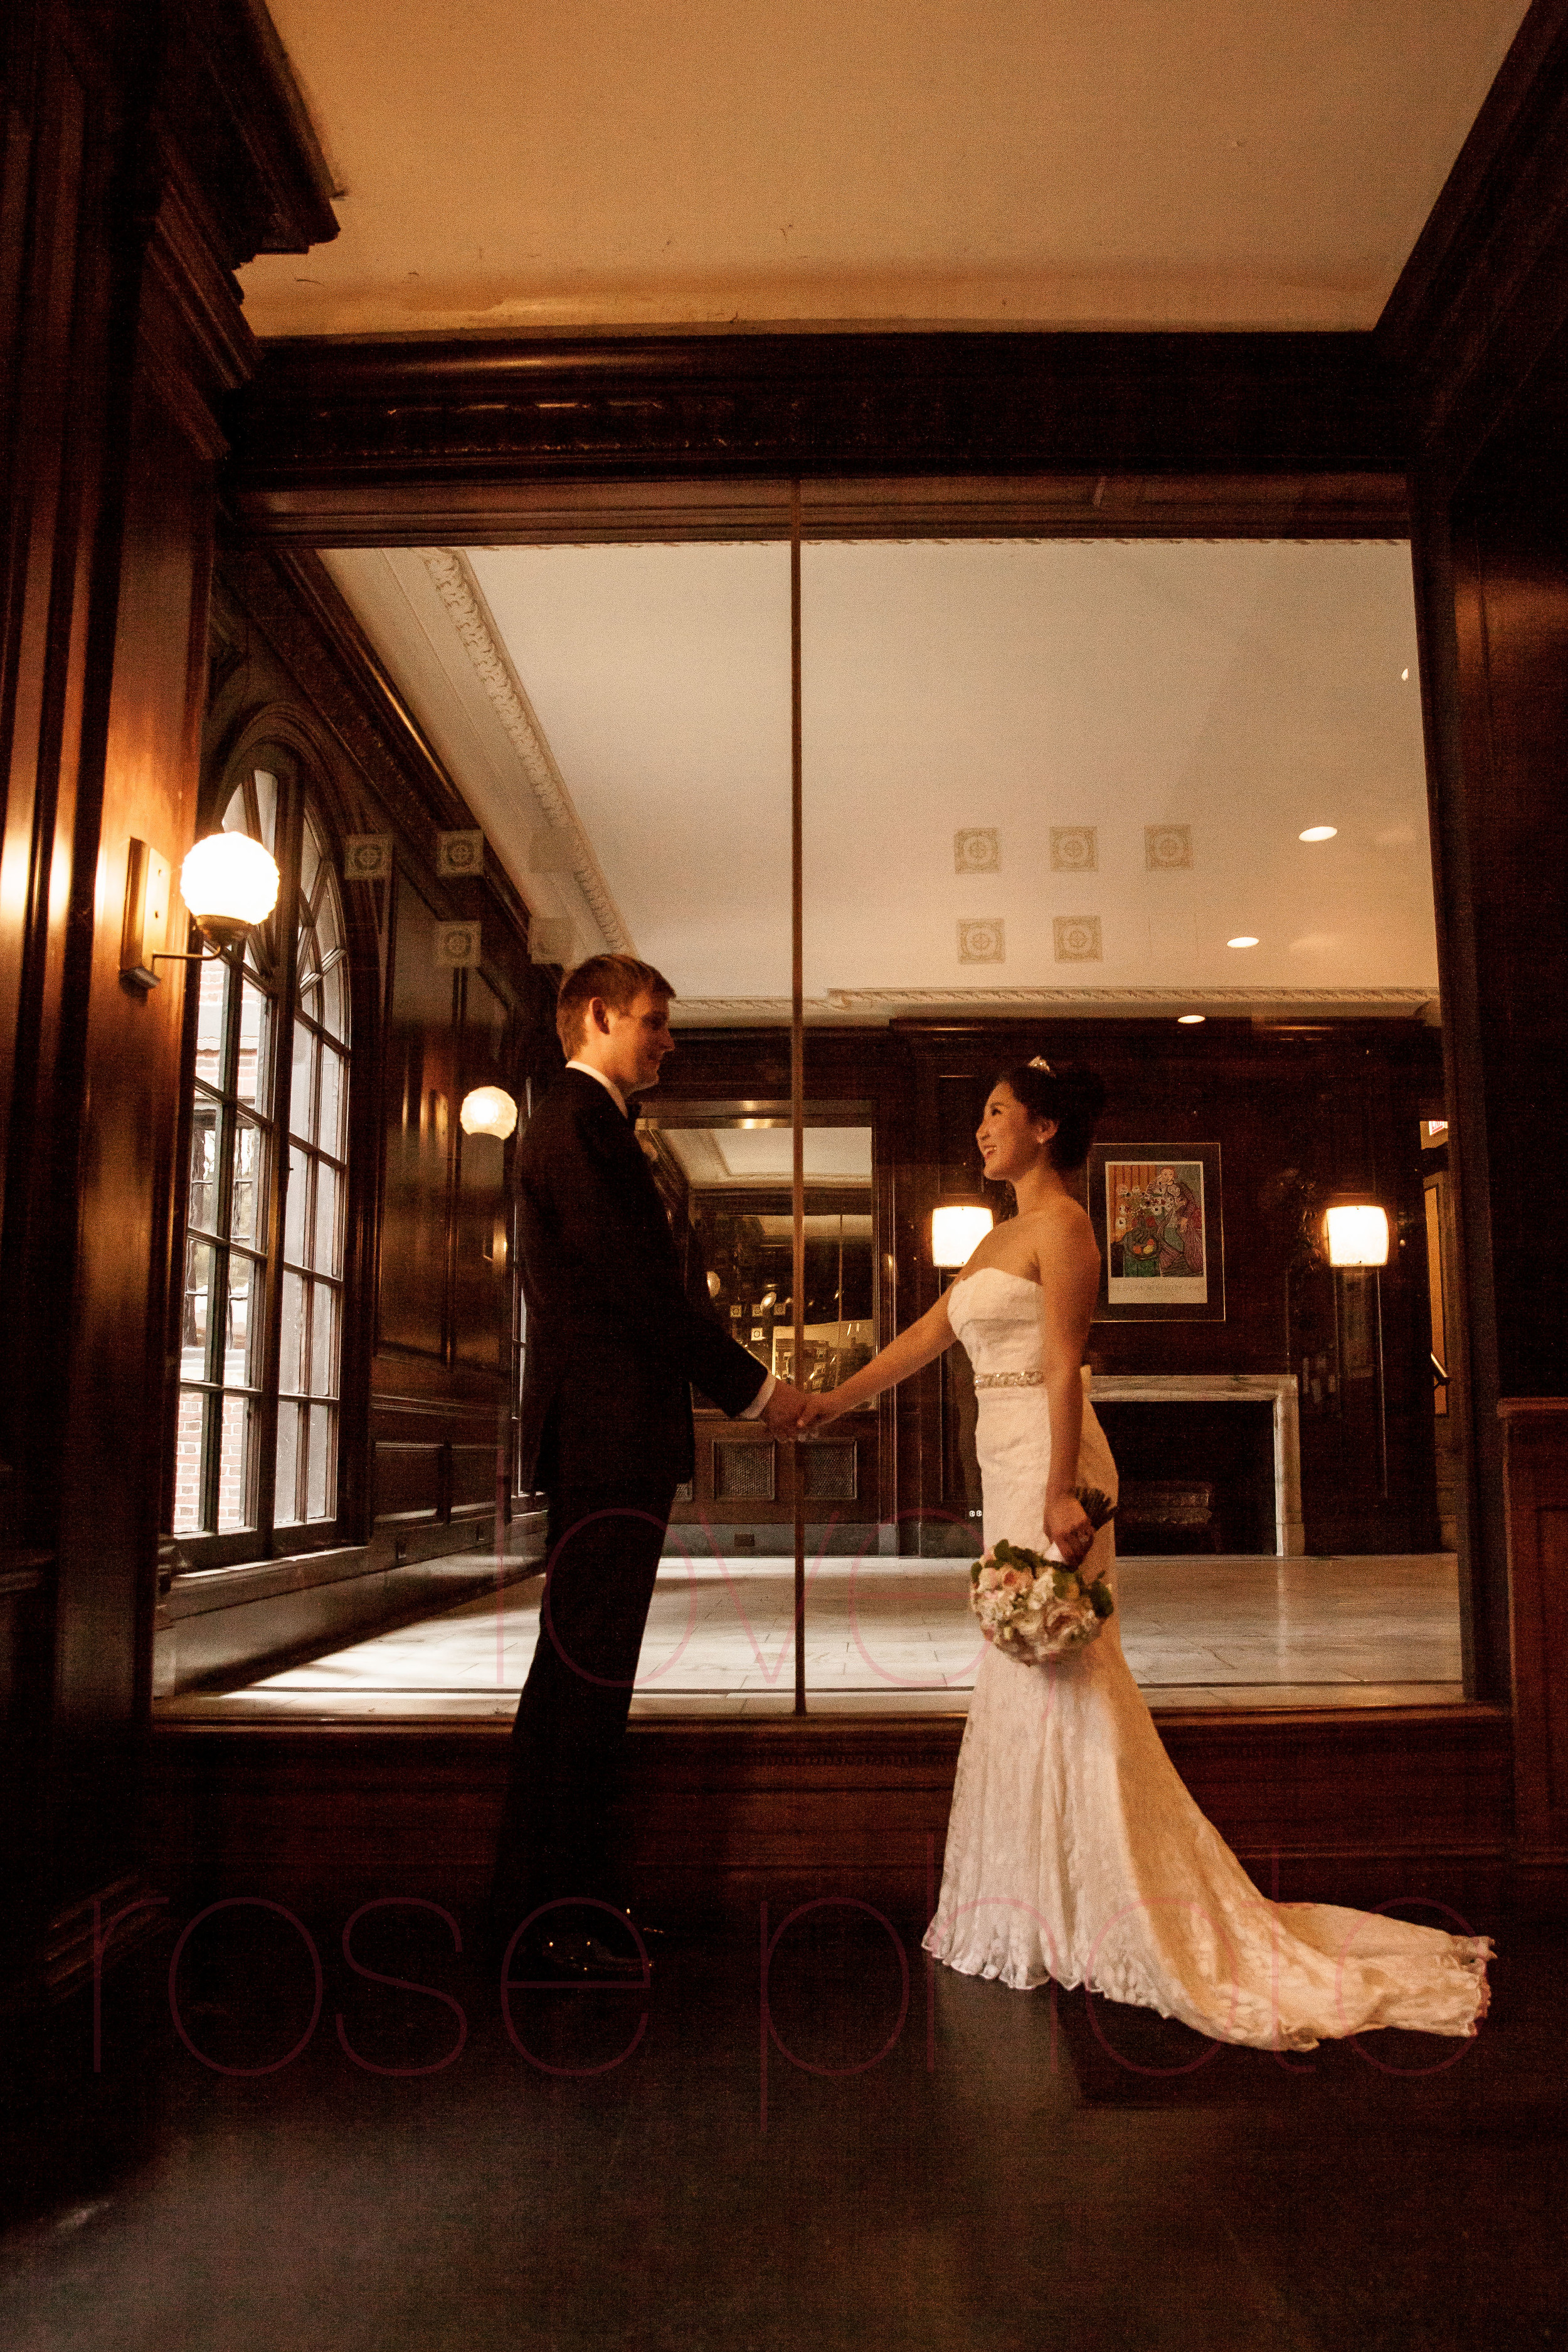 Hanvit + Lukus Lincoln Park Salvatore's Korean German Wedding portrait lifestyle photographer-011.jpg